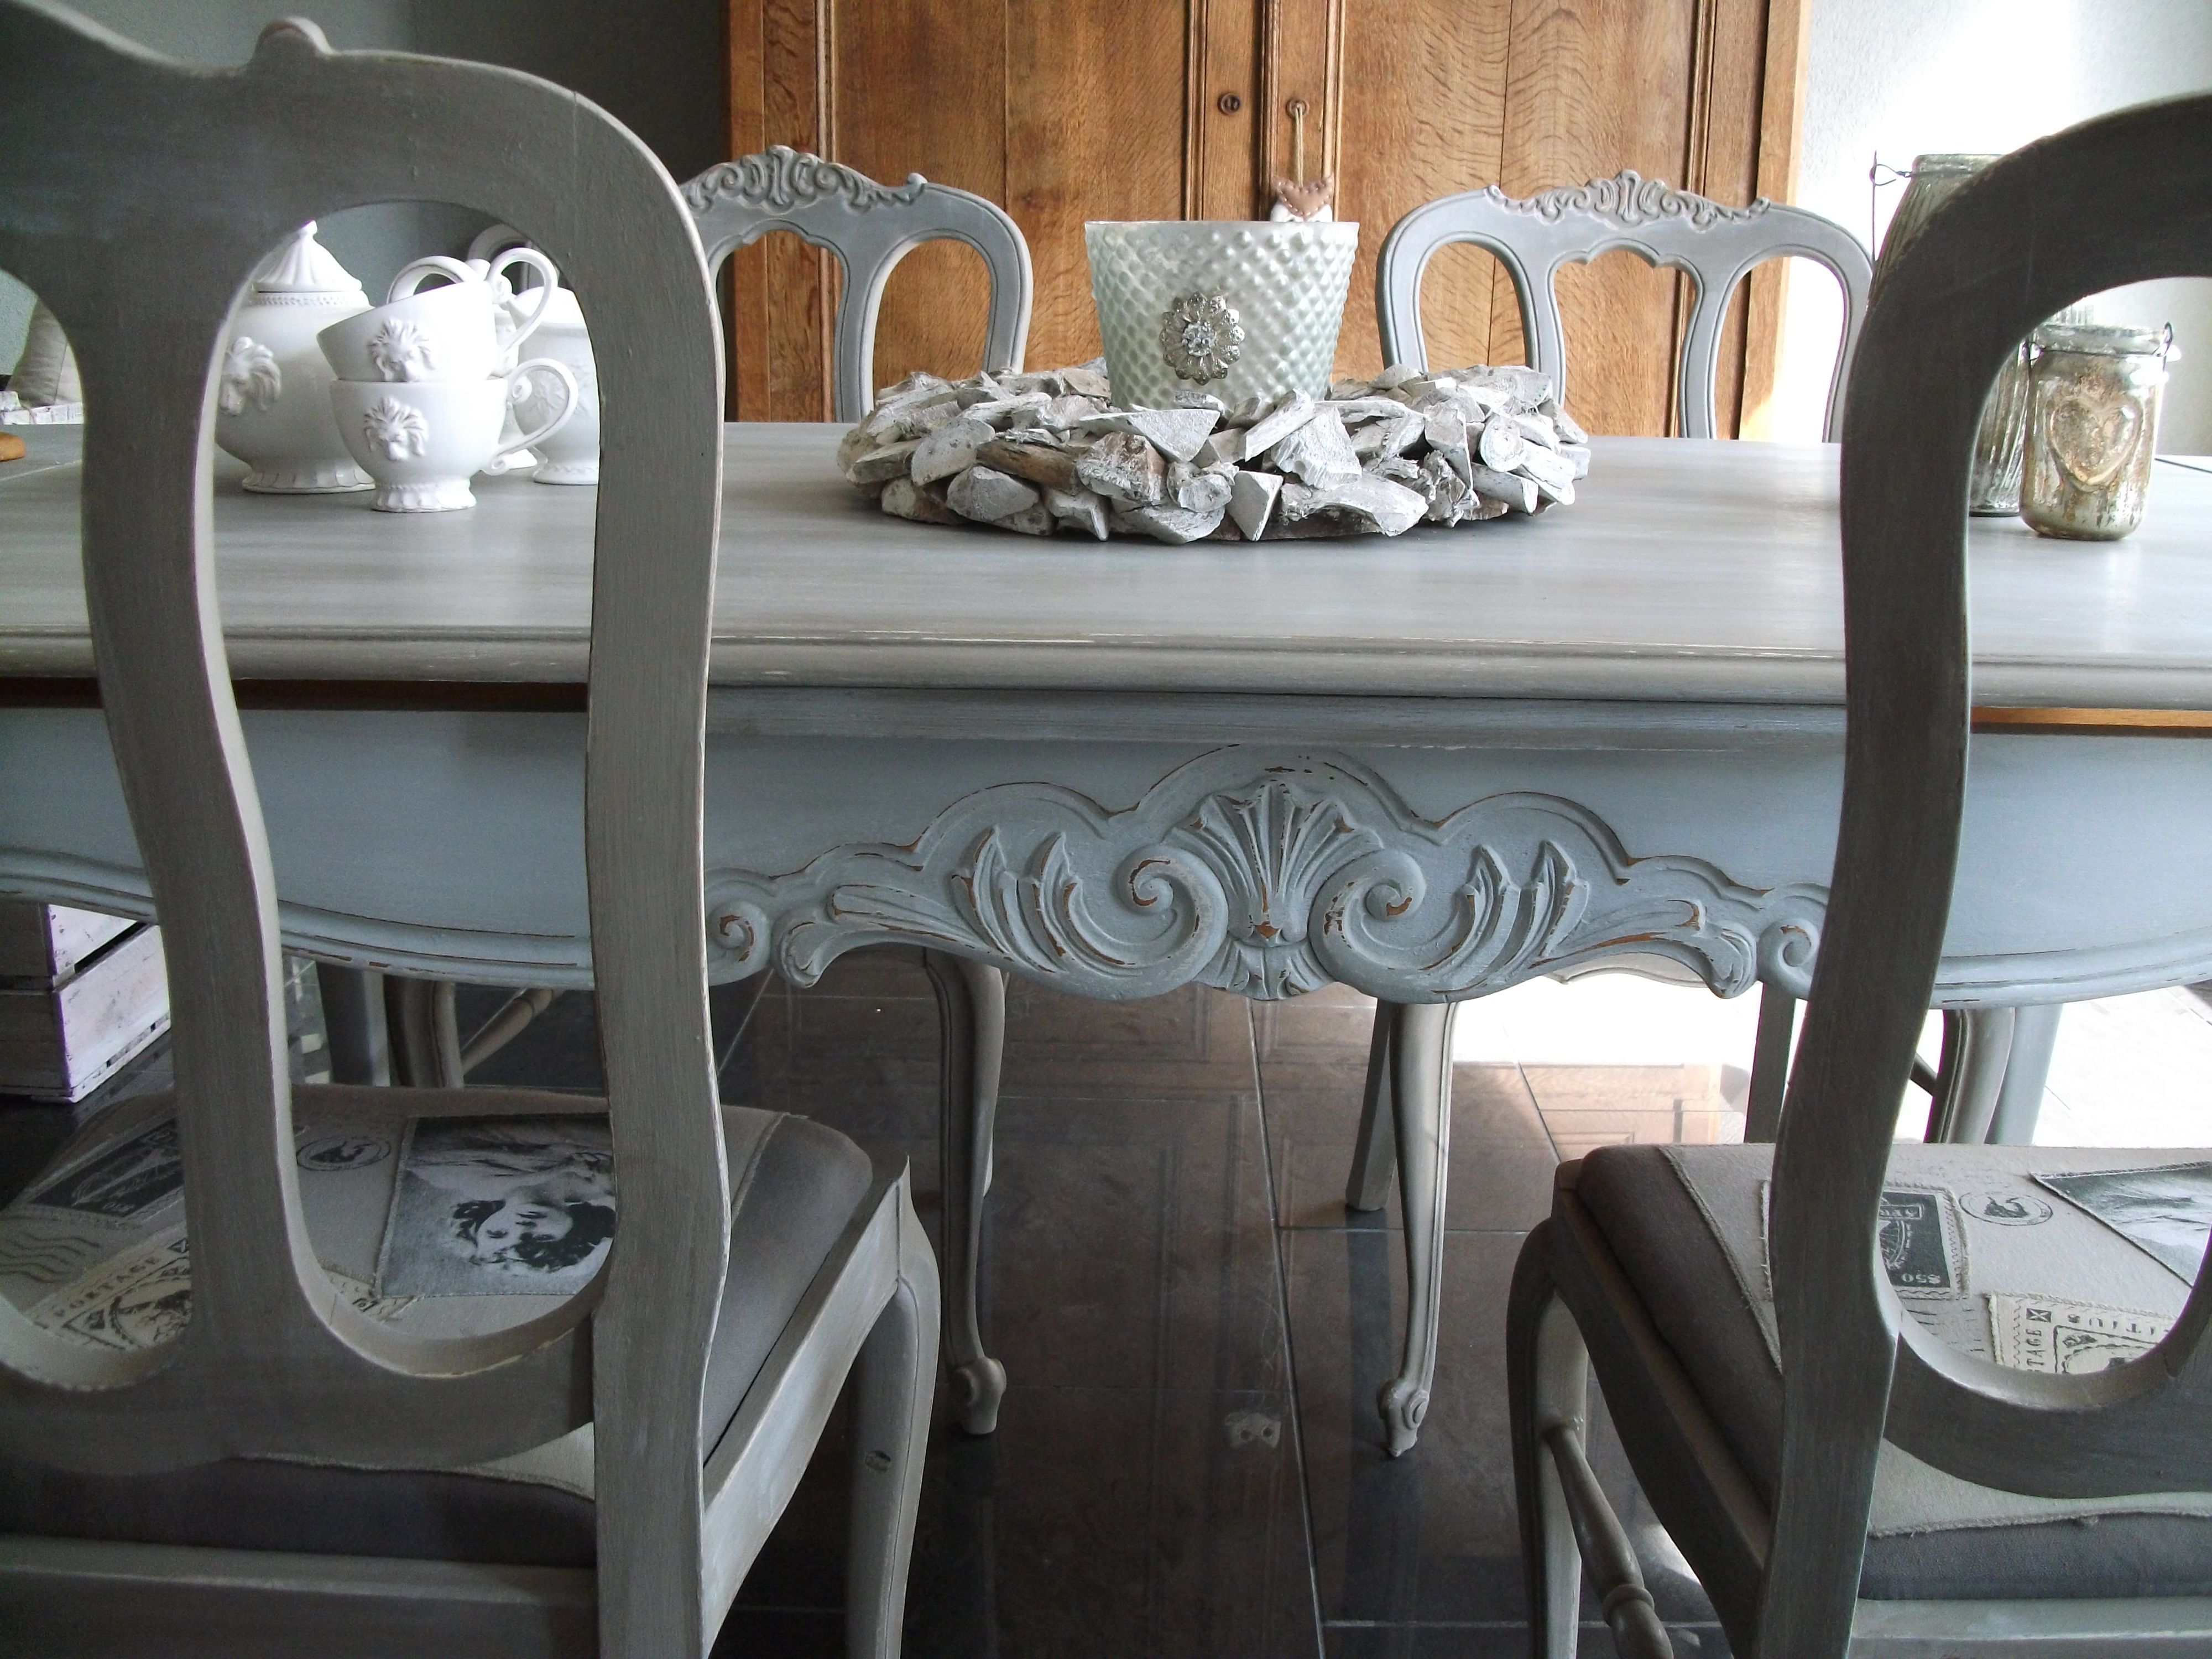 painted queen anne sofa table grand namestaj kragujevac and chairs by me with annie sloan